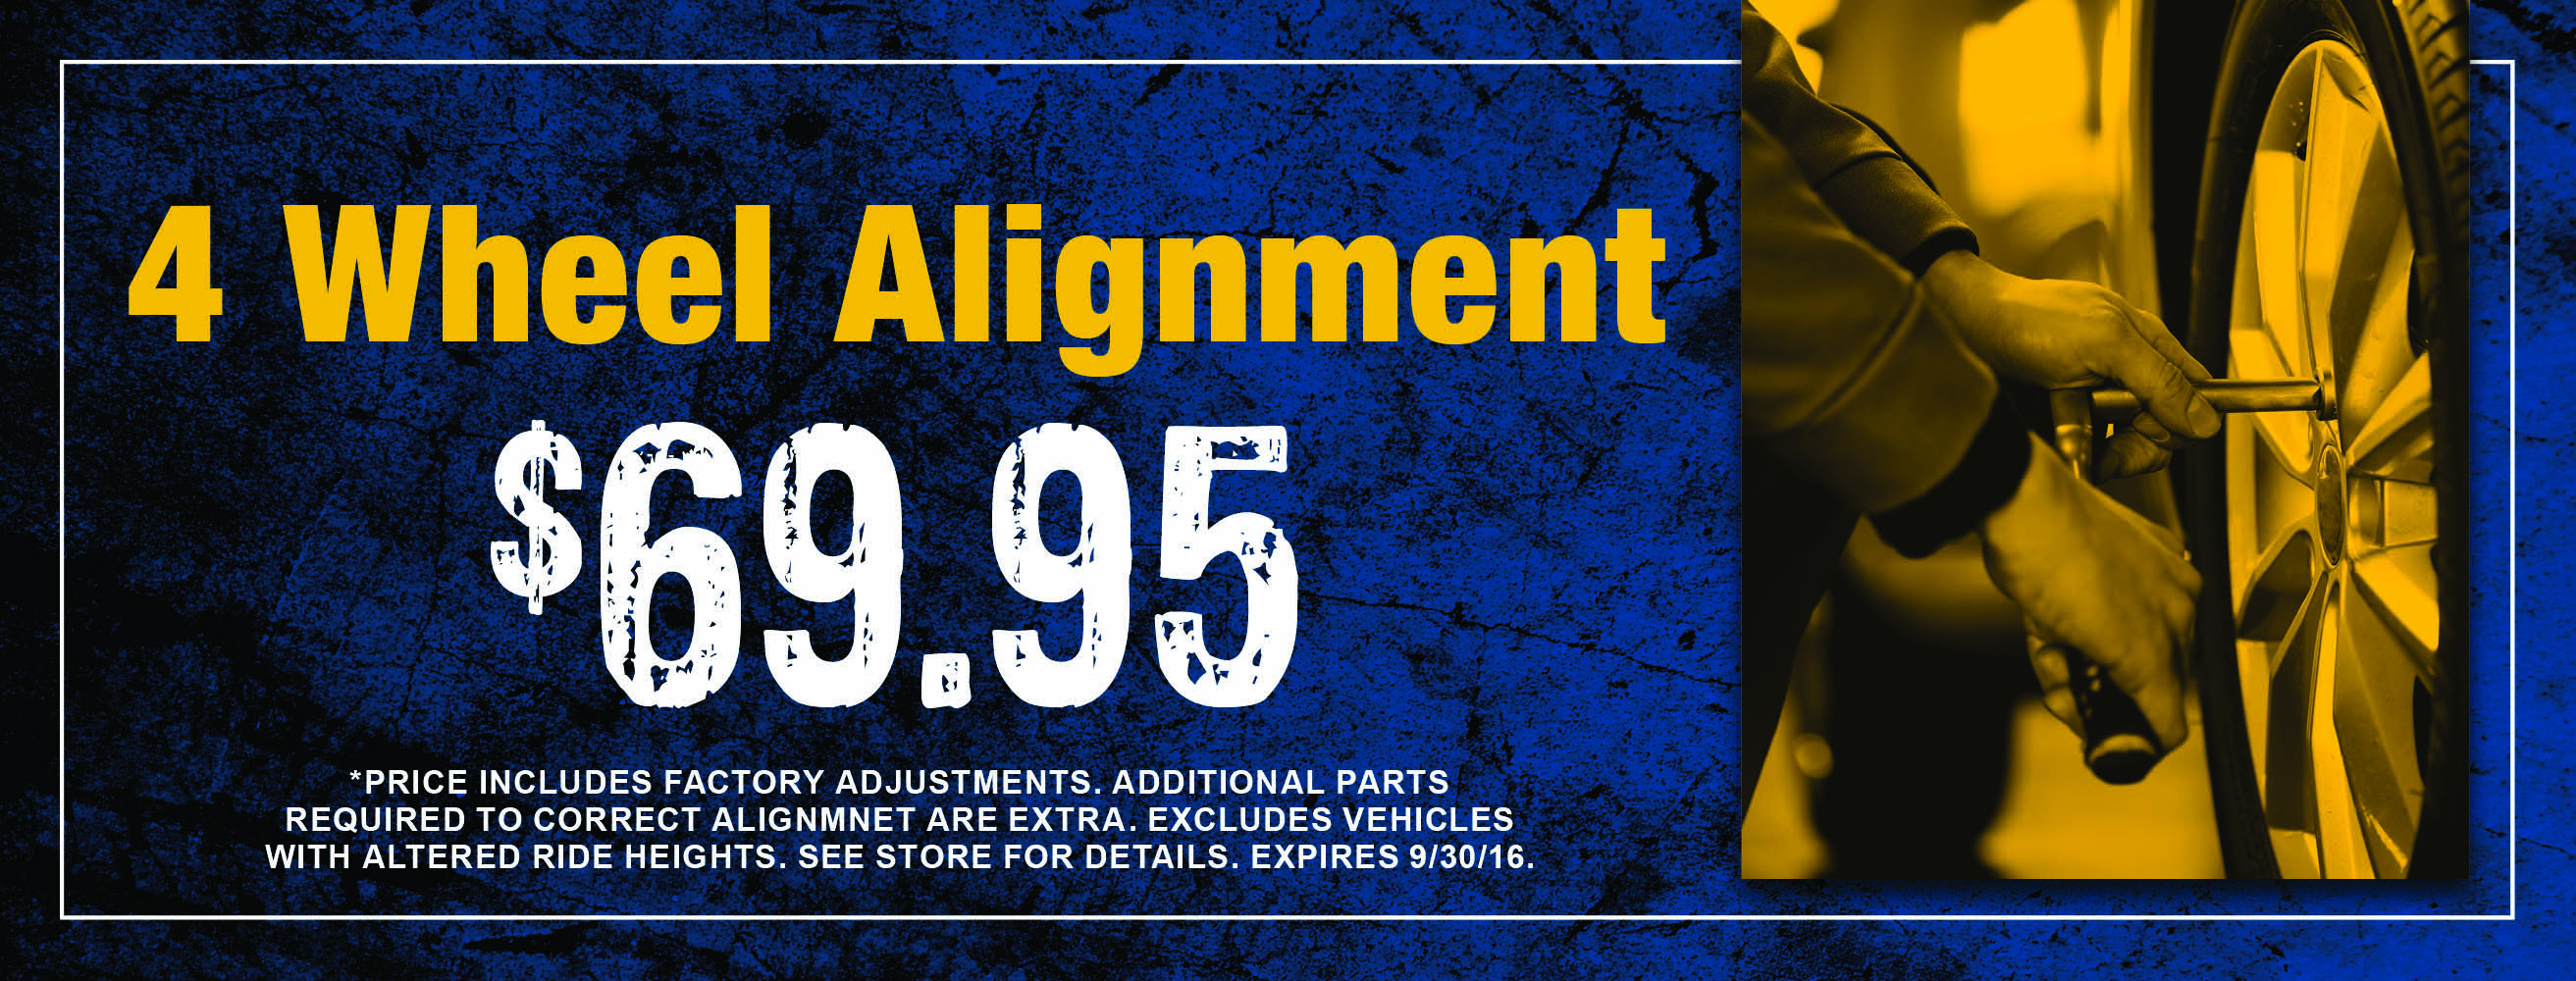 Four(4) Wheel Aligment - $69.95